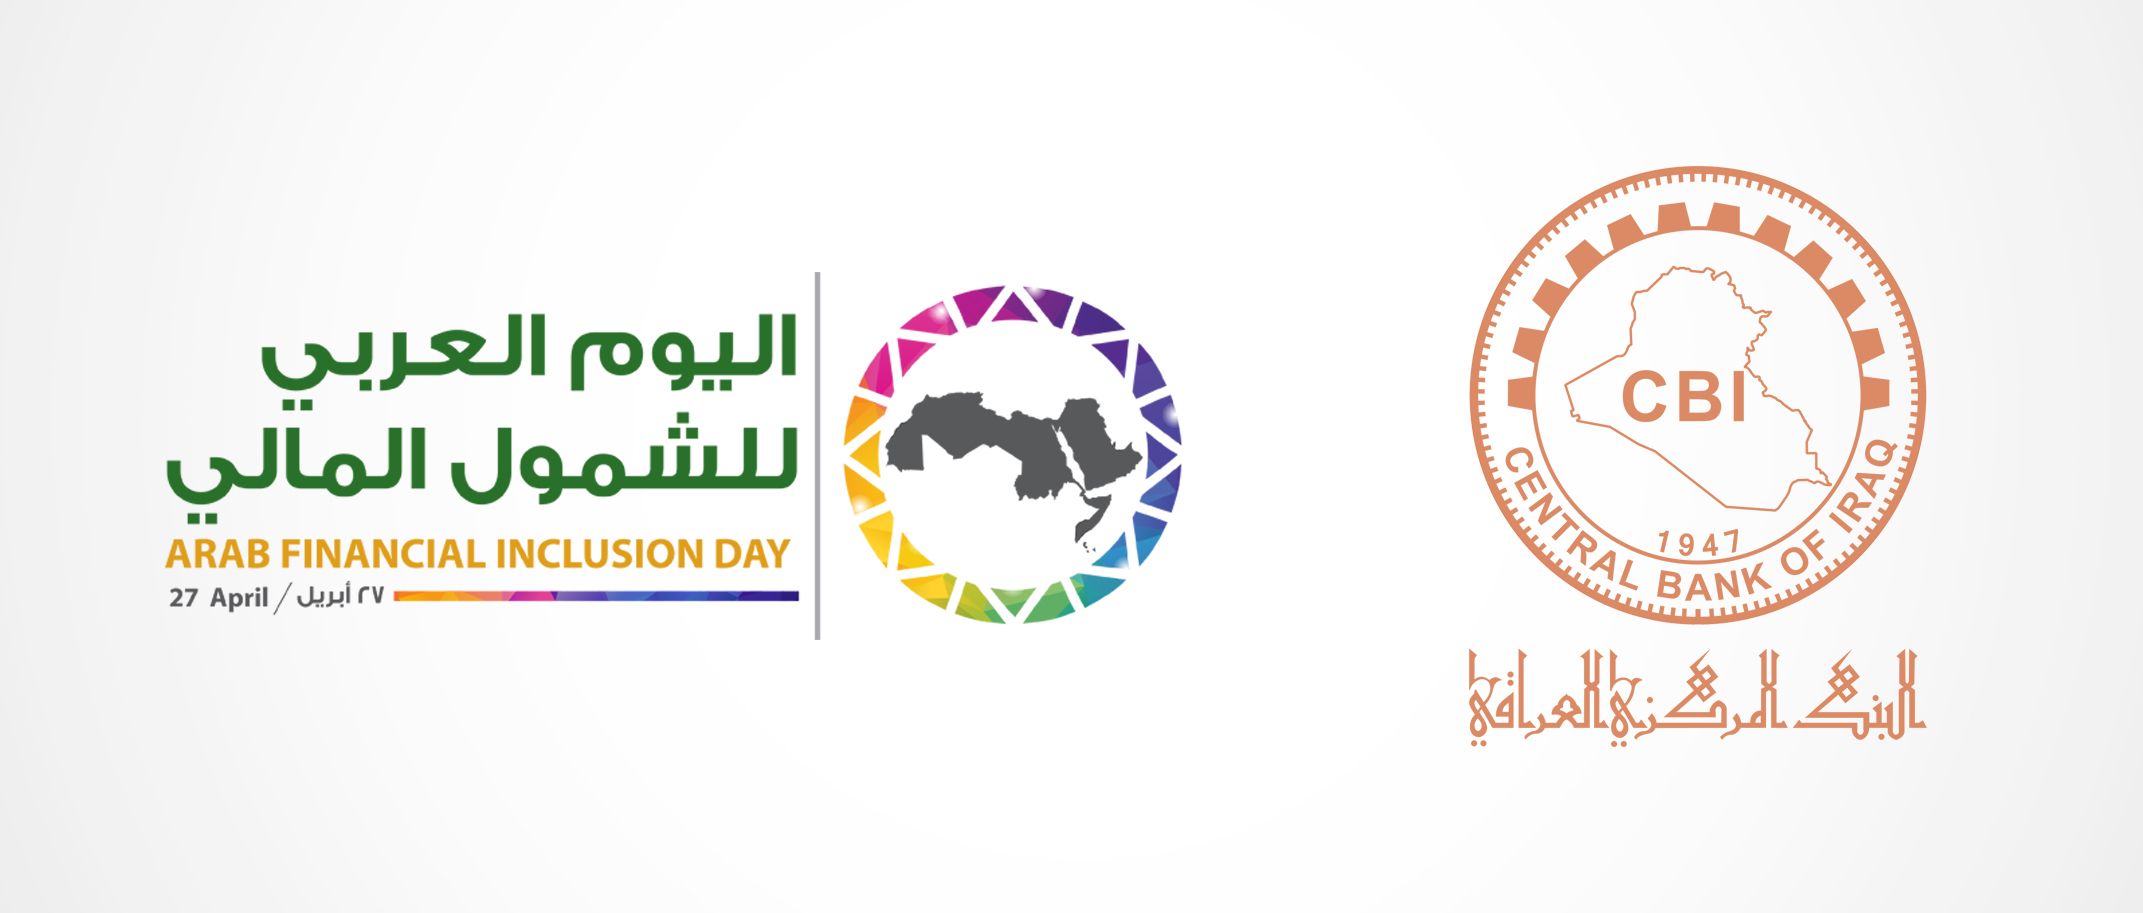 Launching the activities of the Arab Day for Financial Inclusion